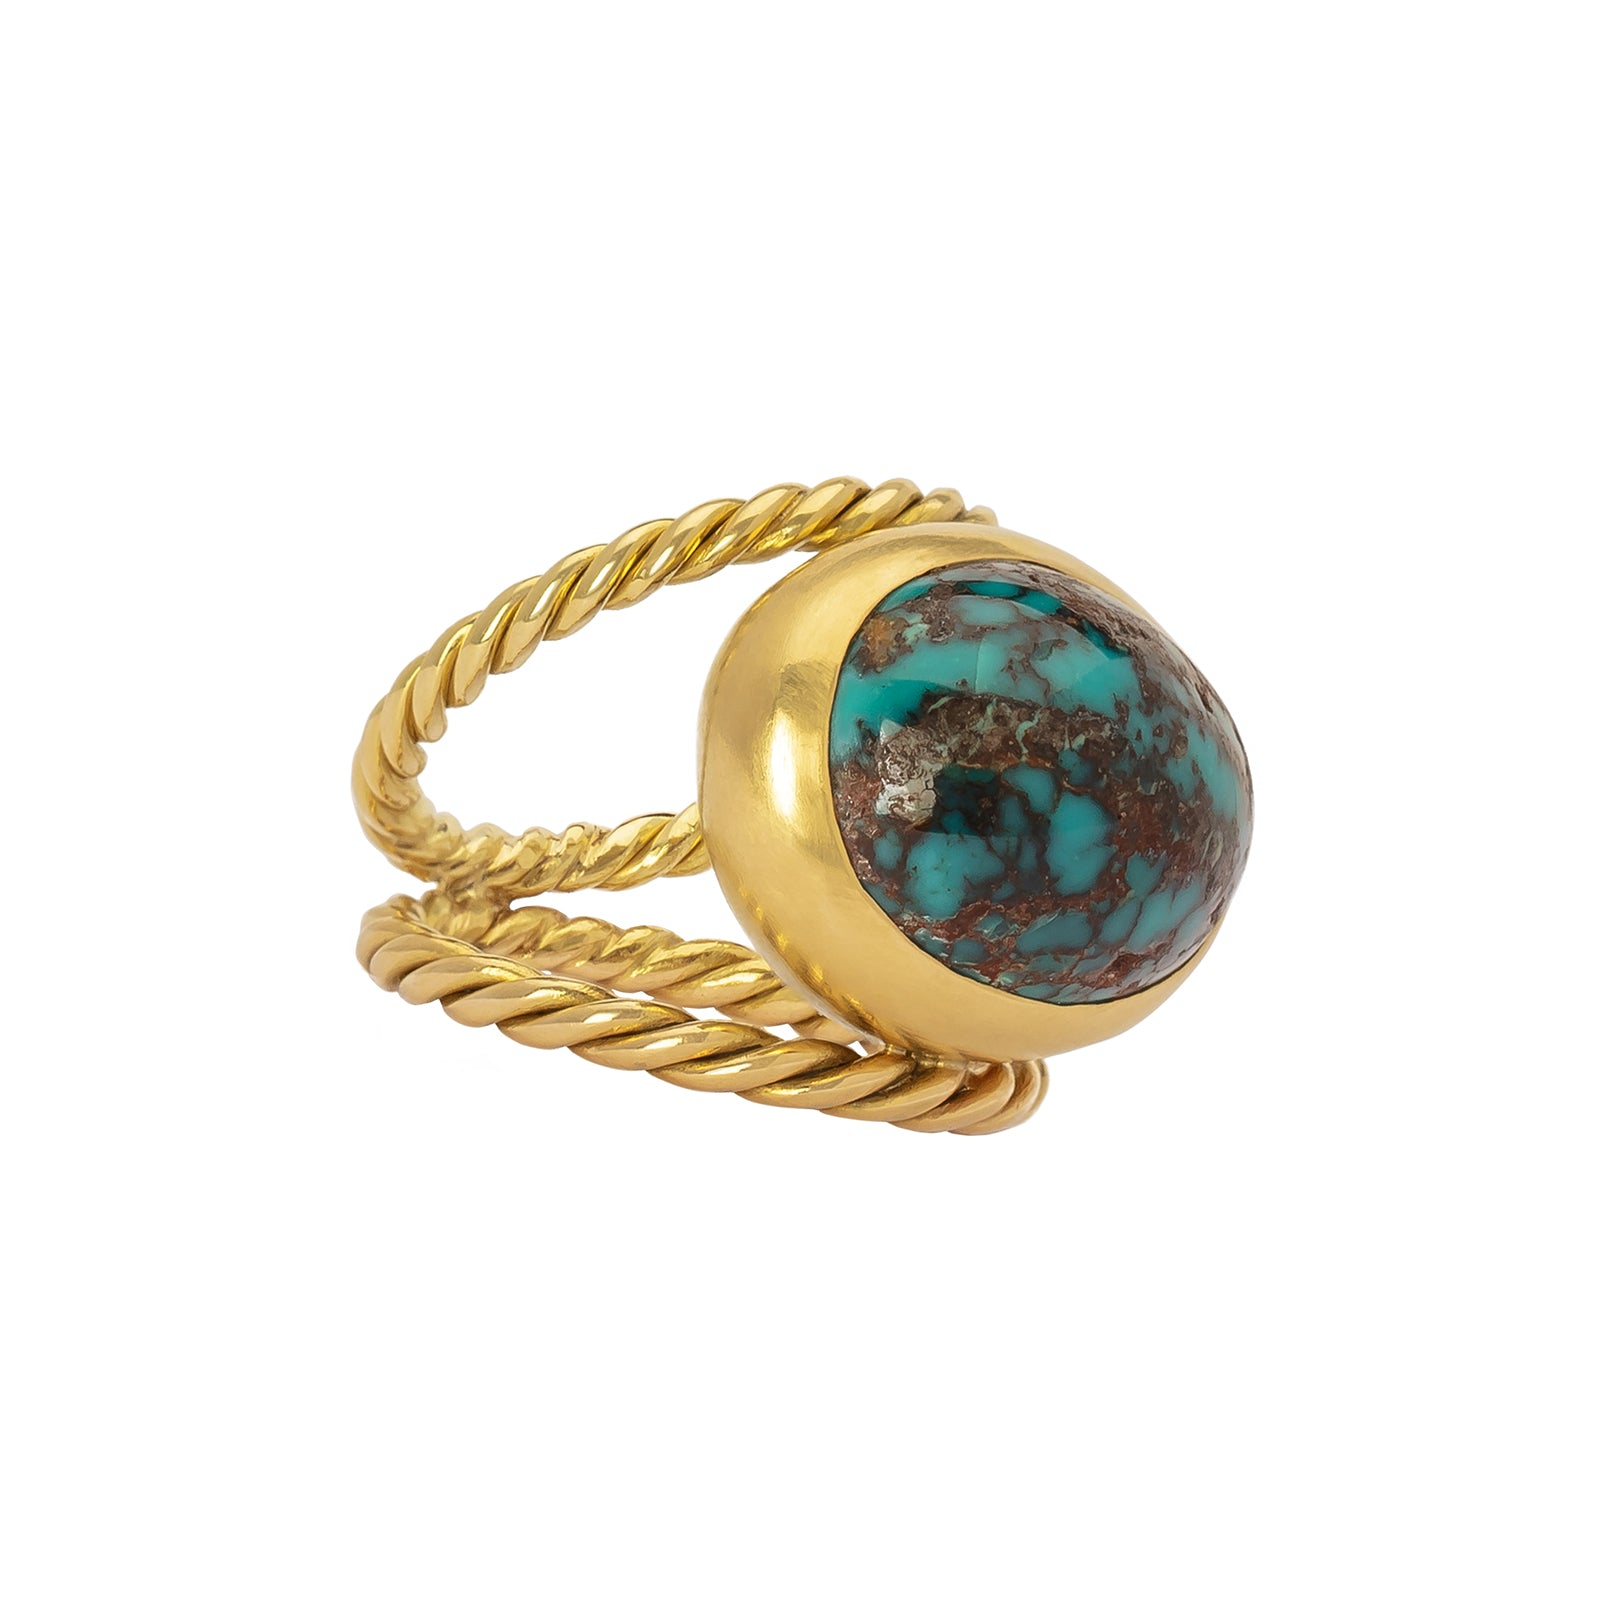 Haute Victoire Hand Twisted Gold Ring - Turquoise - Rings - Broken English Jewelry